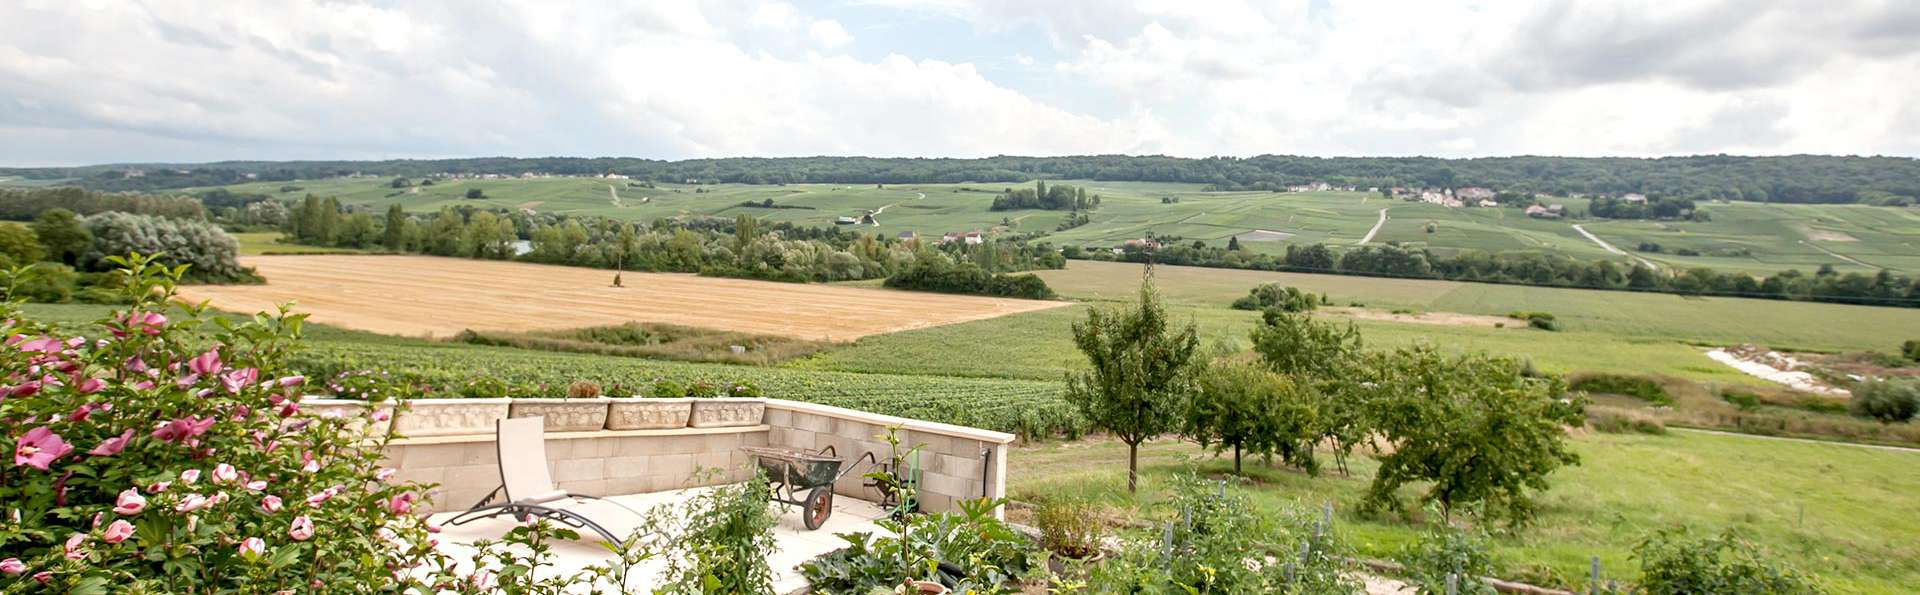 Domaine de Bacchus - Edit_View.jpg